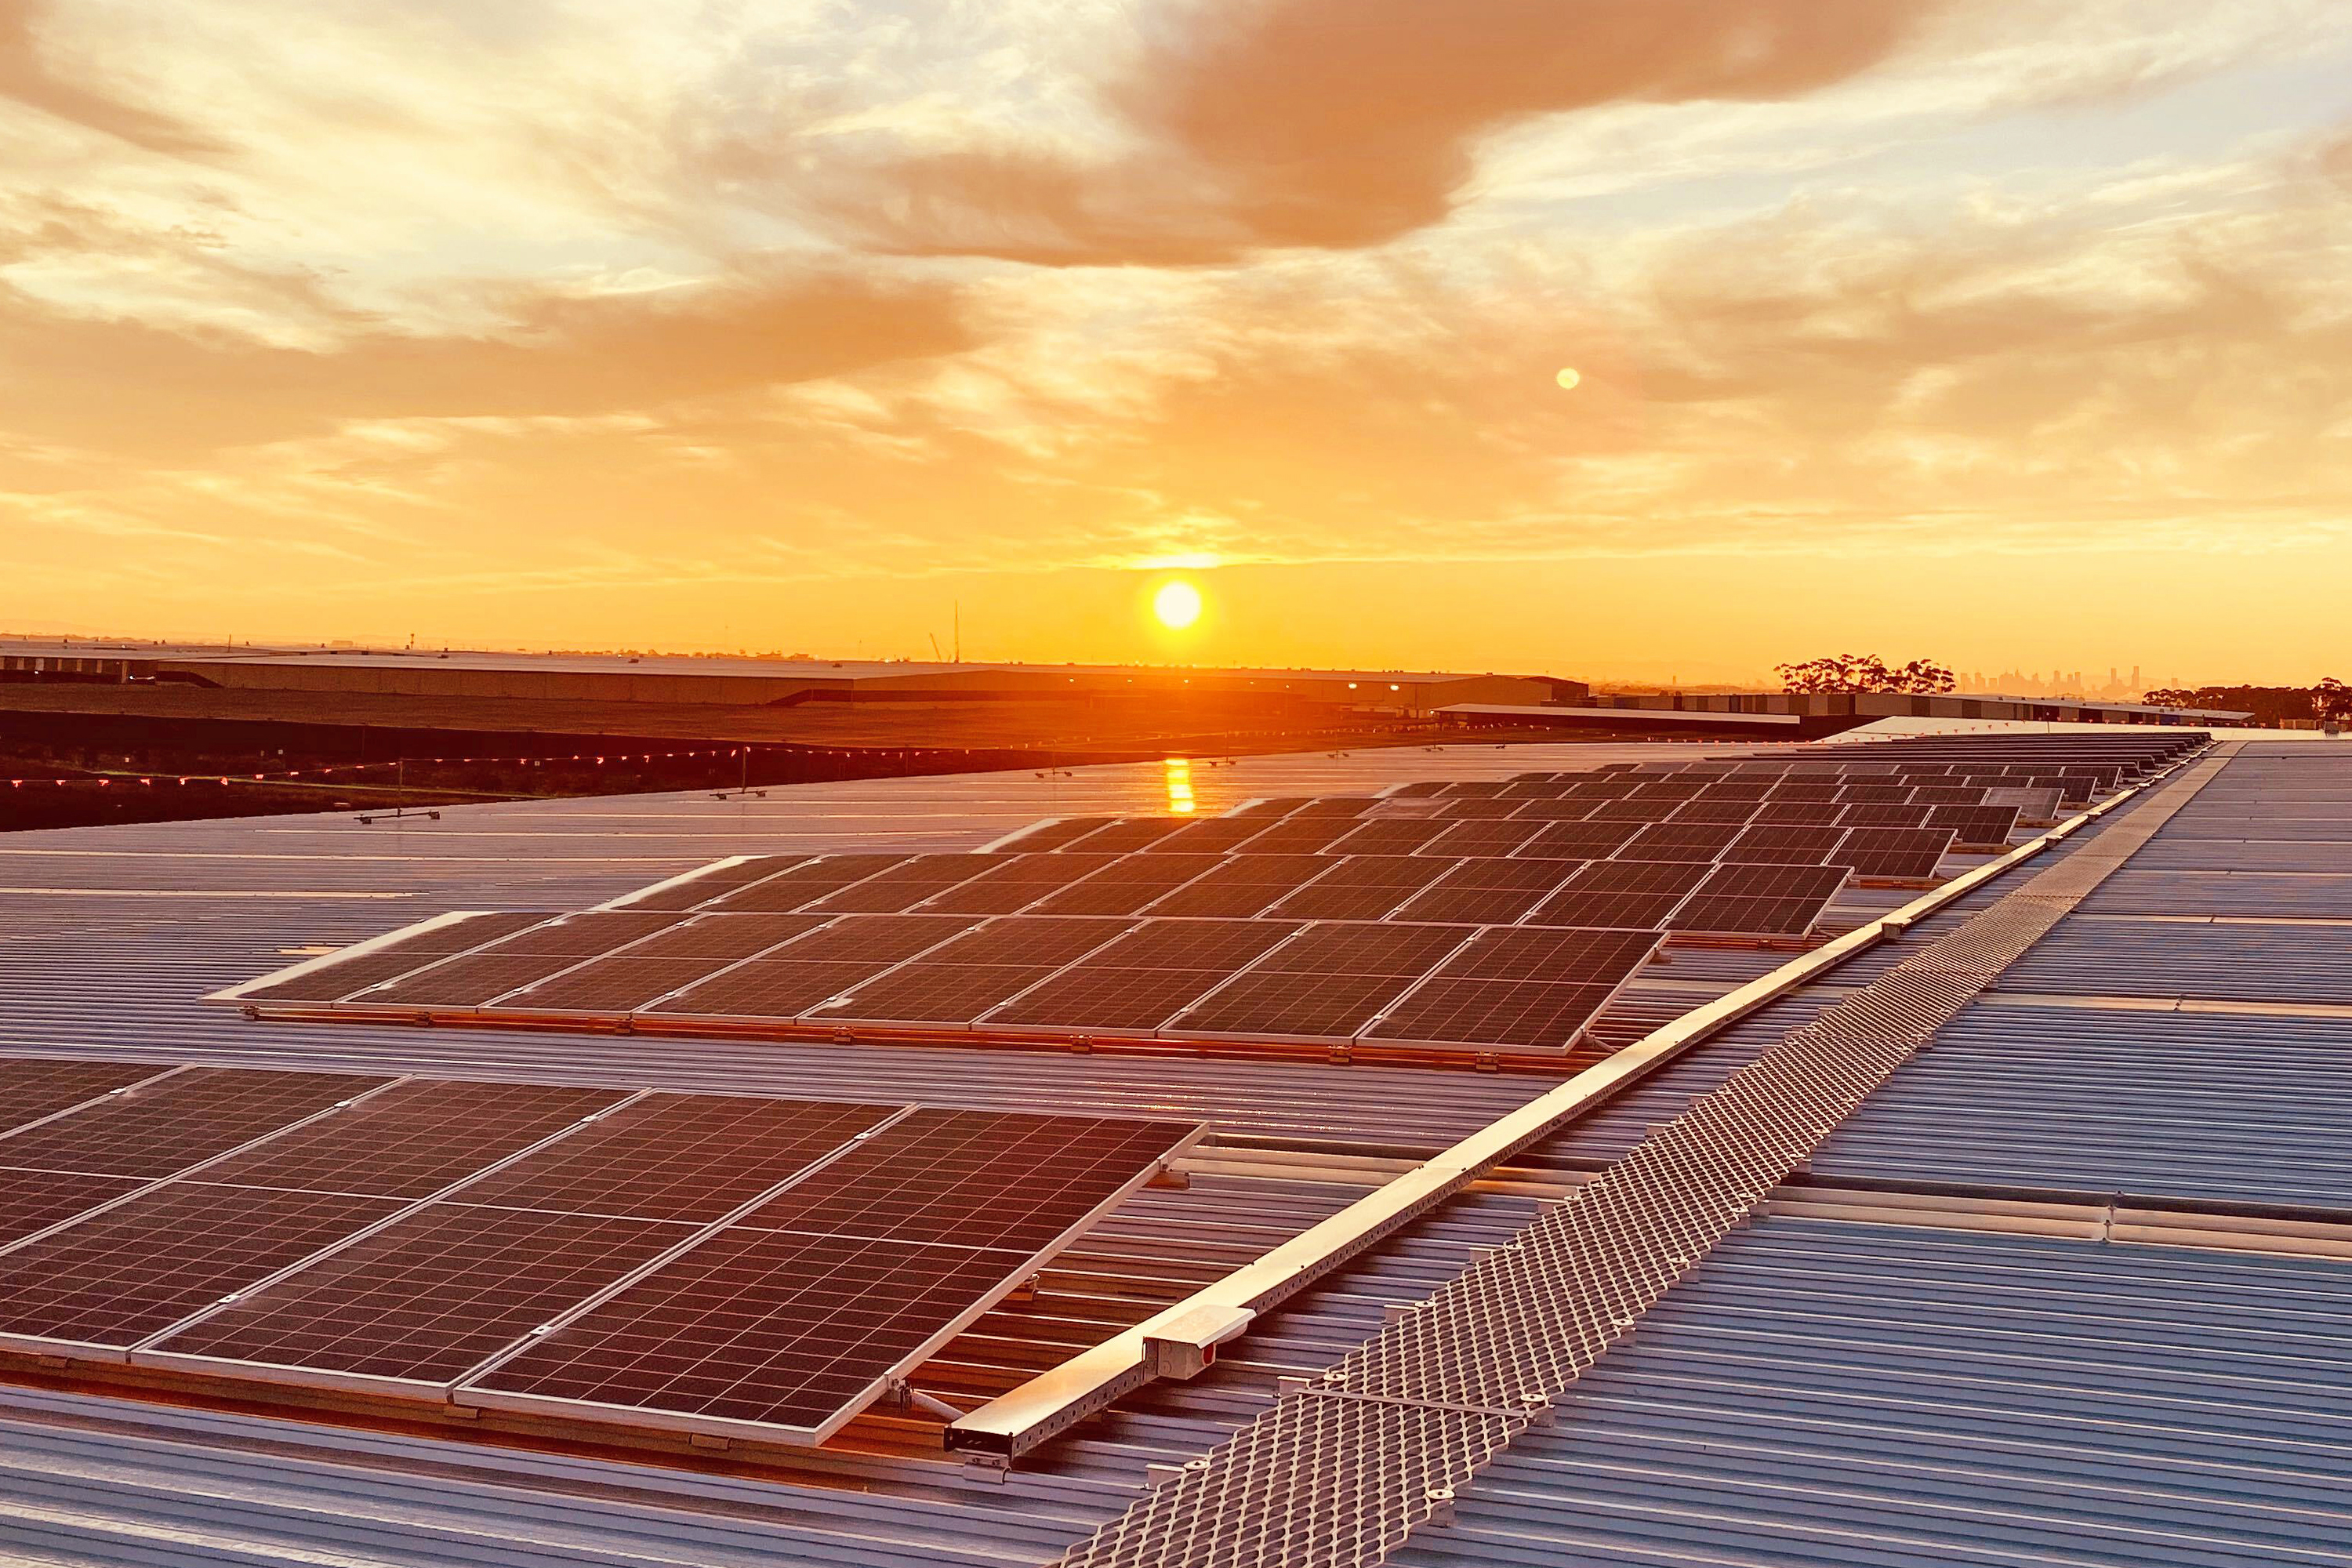 Vaughan Constructions partner with Greenwood to deliver key solar projects for Mapletree Logistics